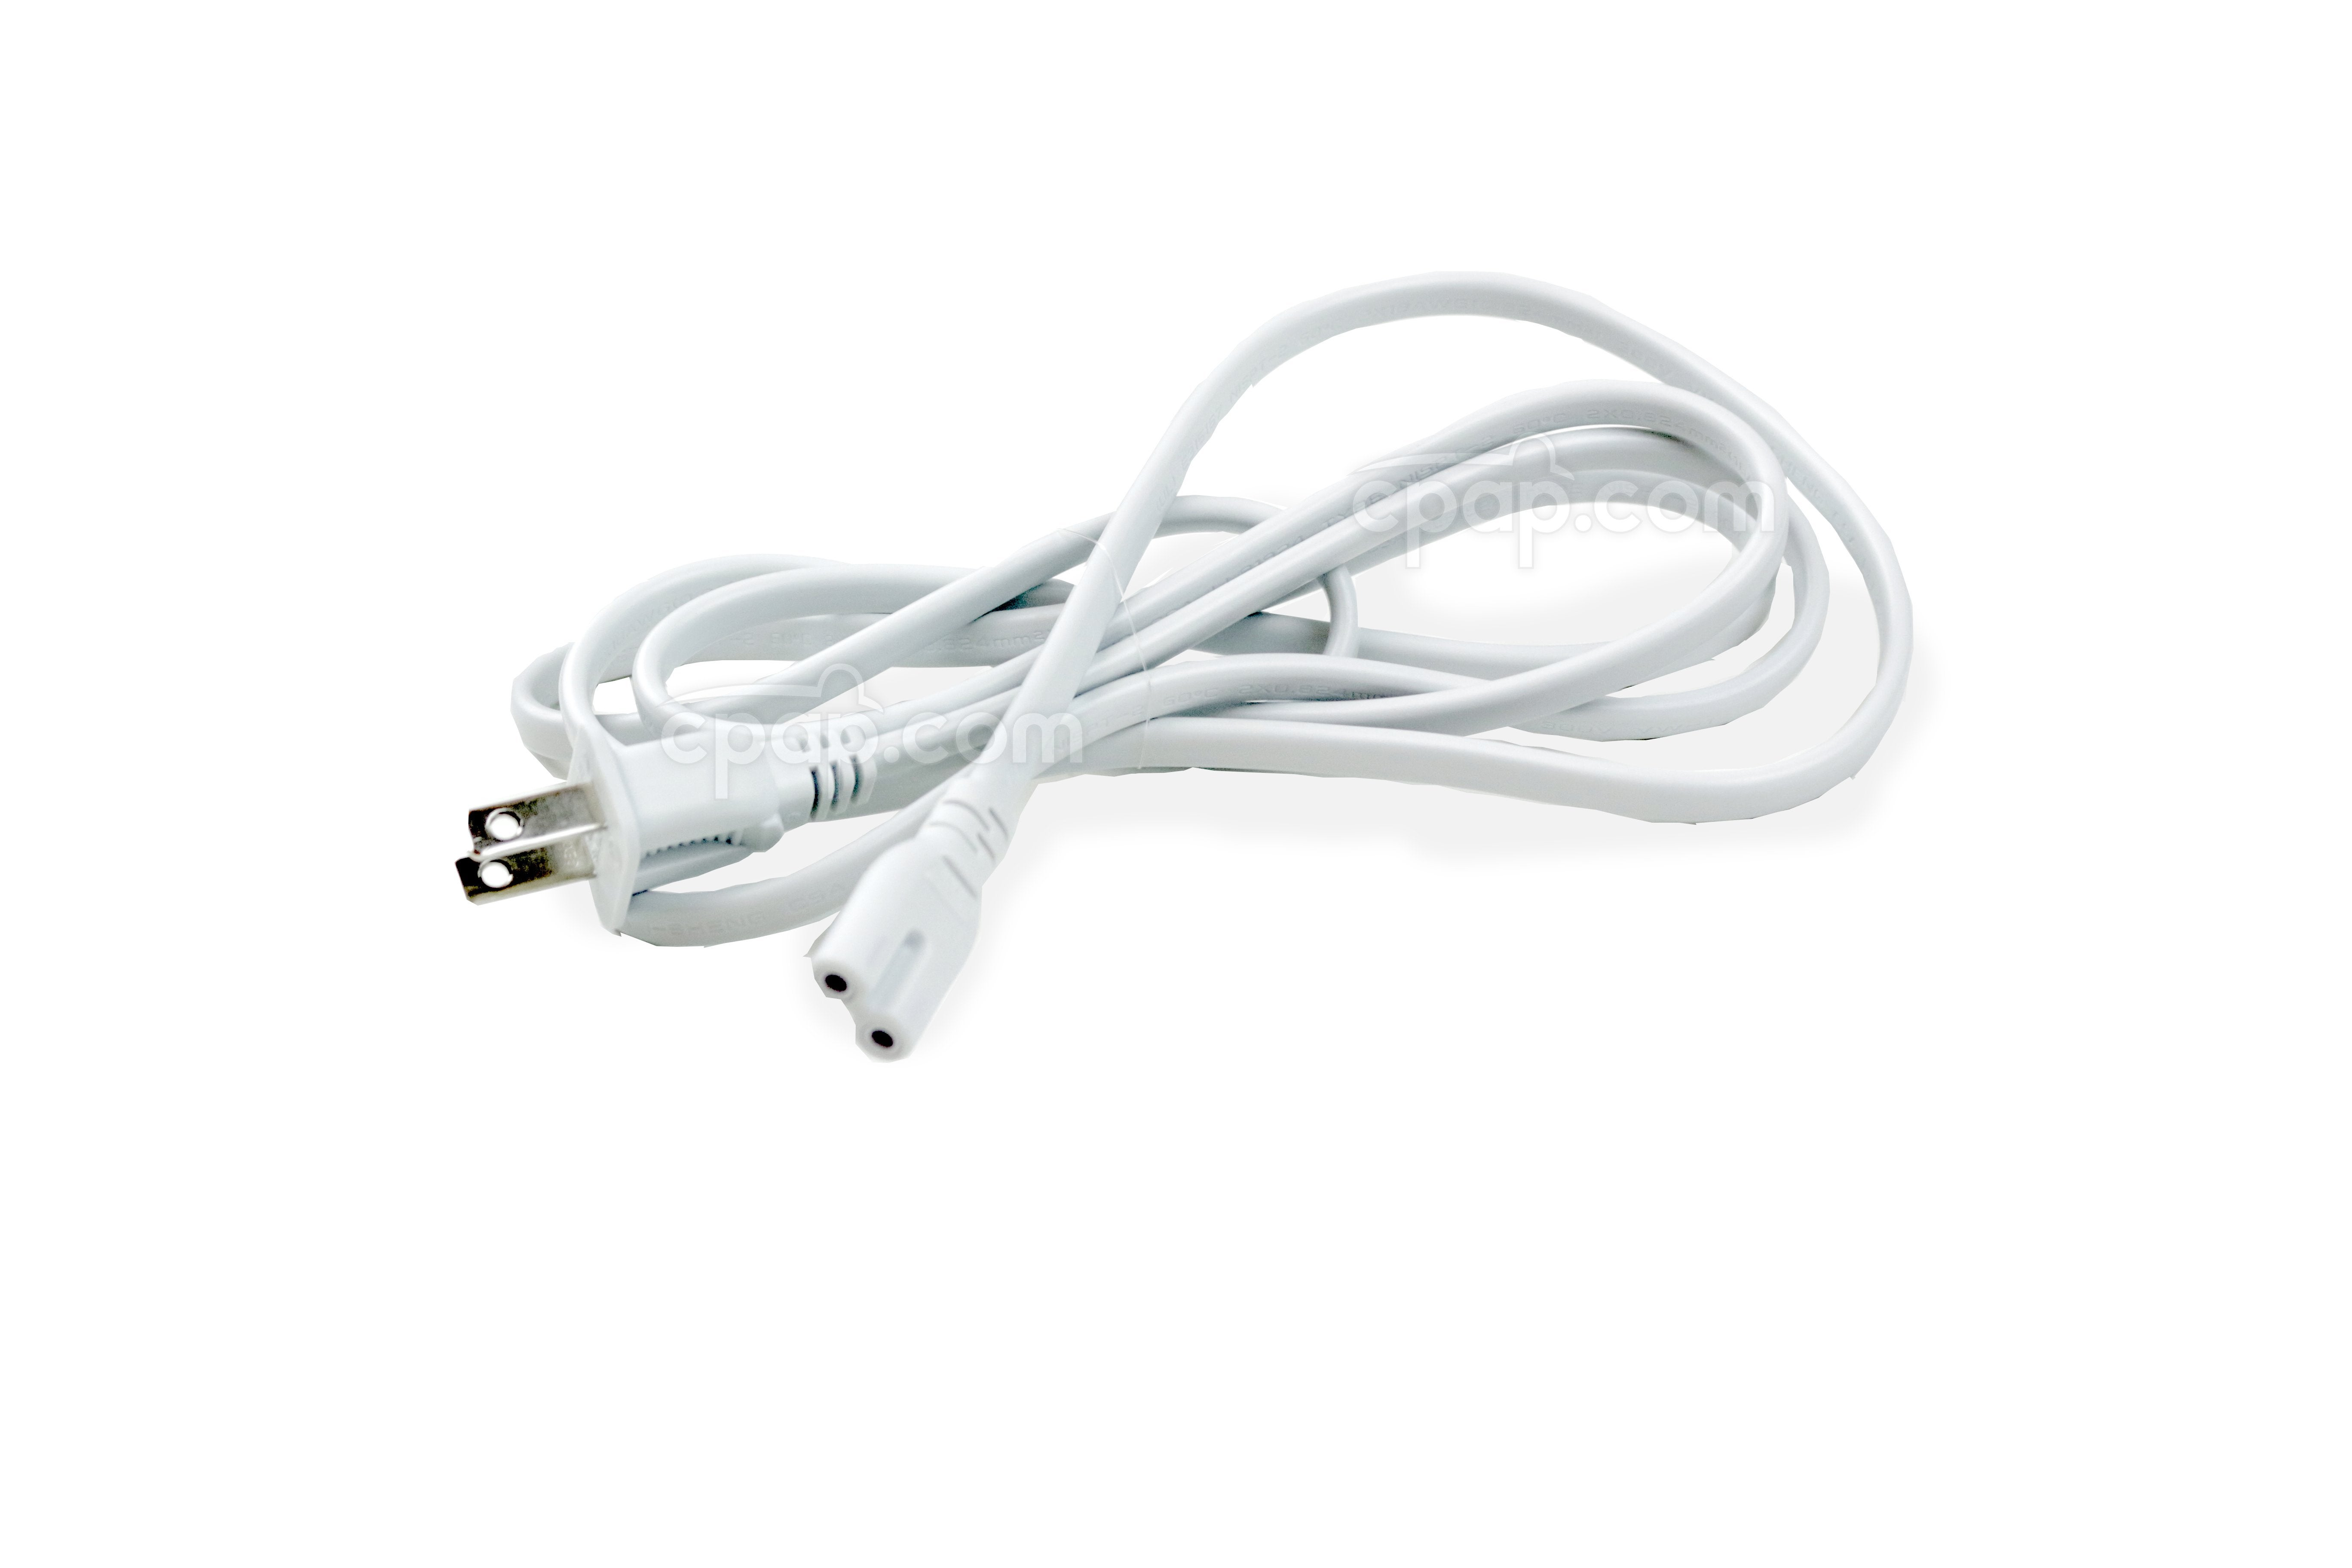 DreamStation Go Power Cord 6 FT US / Can